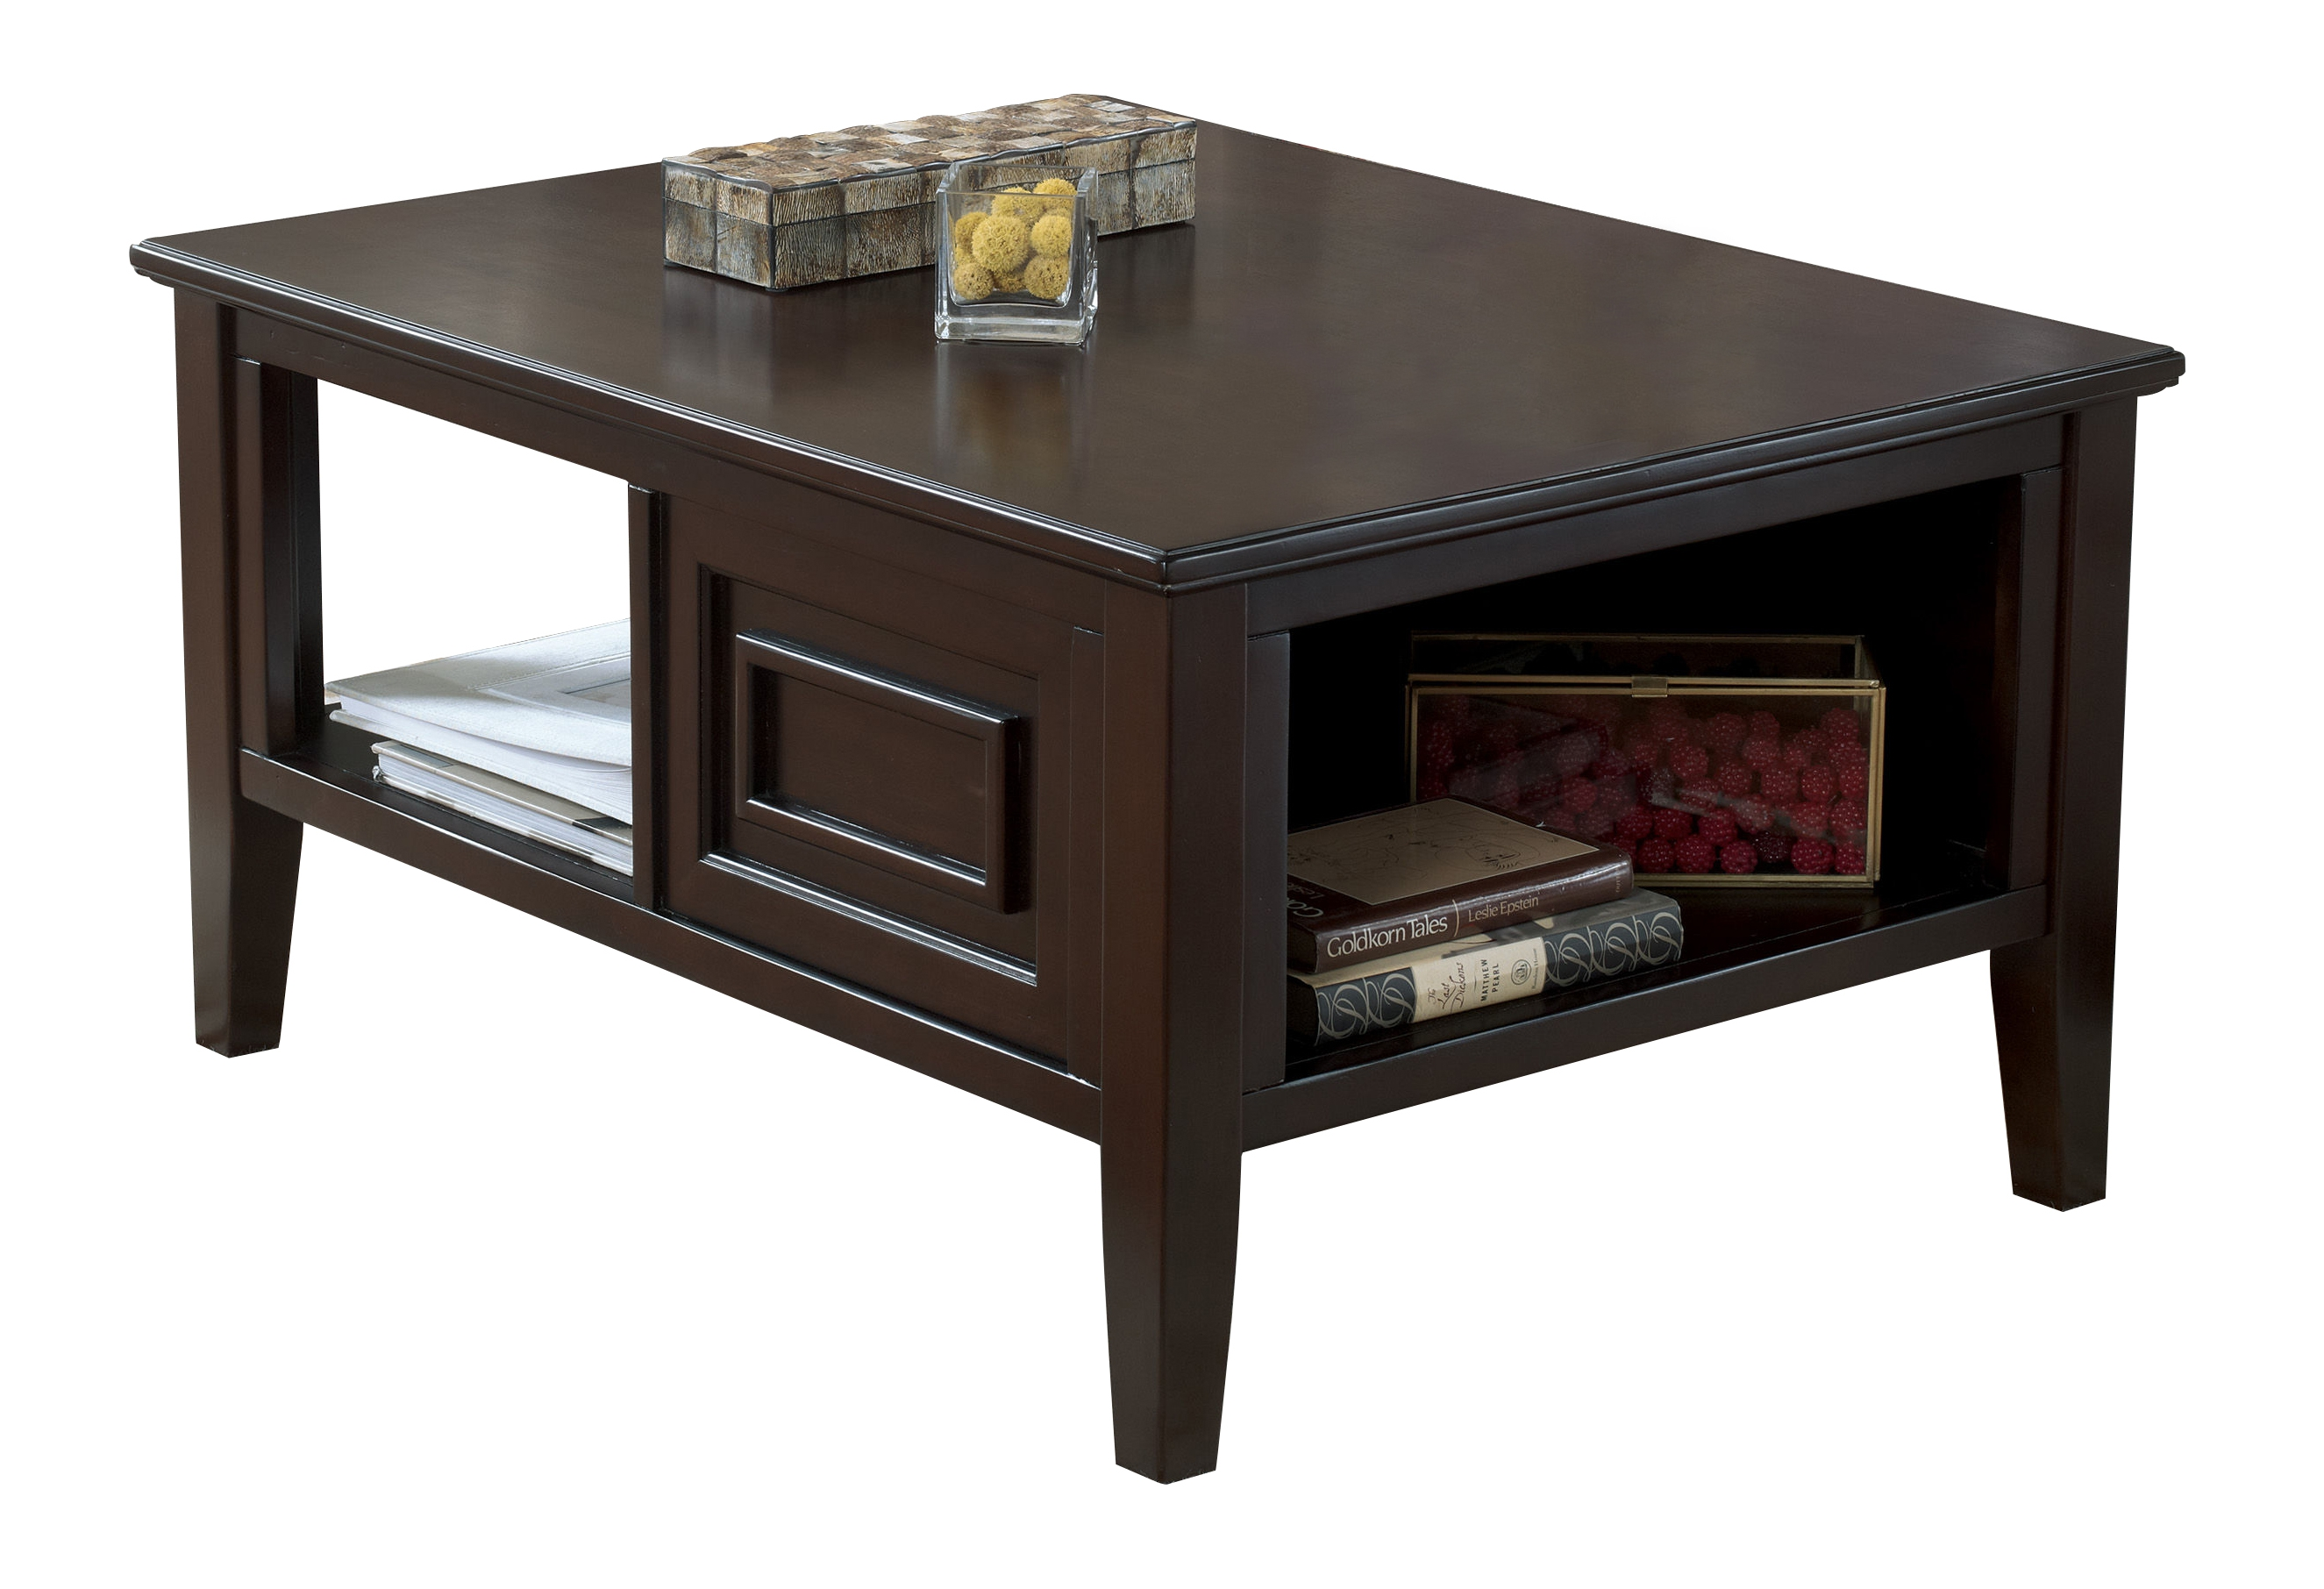 larimer contemporary dark brown wood coffee table set occasional tables the classy home. Black Bedroom Furniture Sets. Home Design Ideas